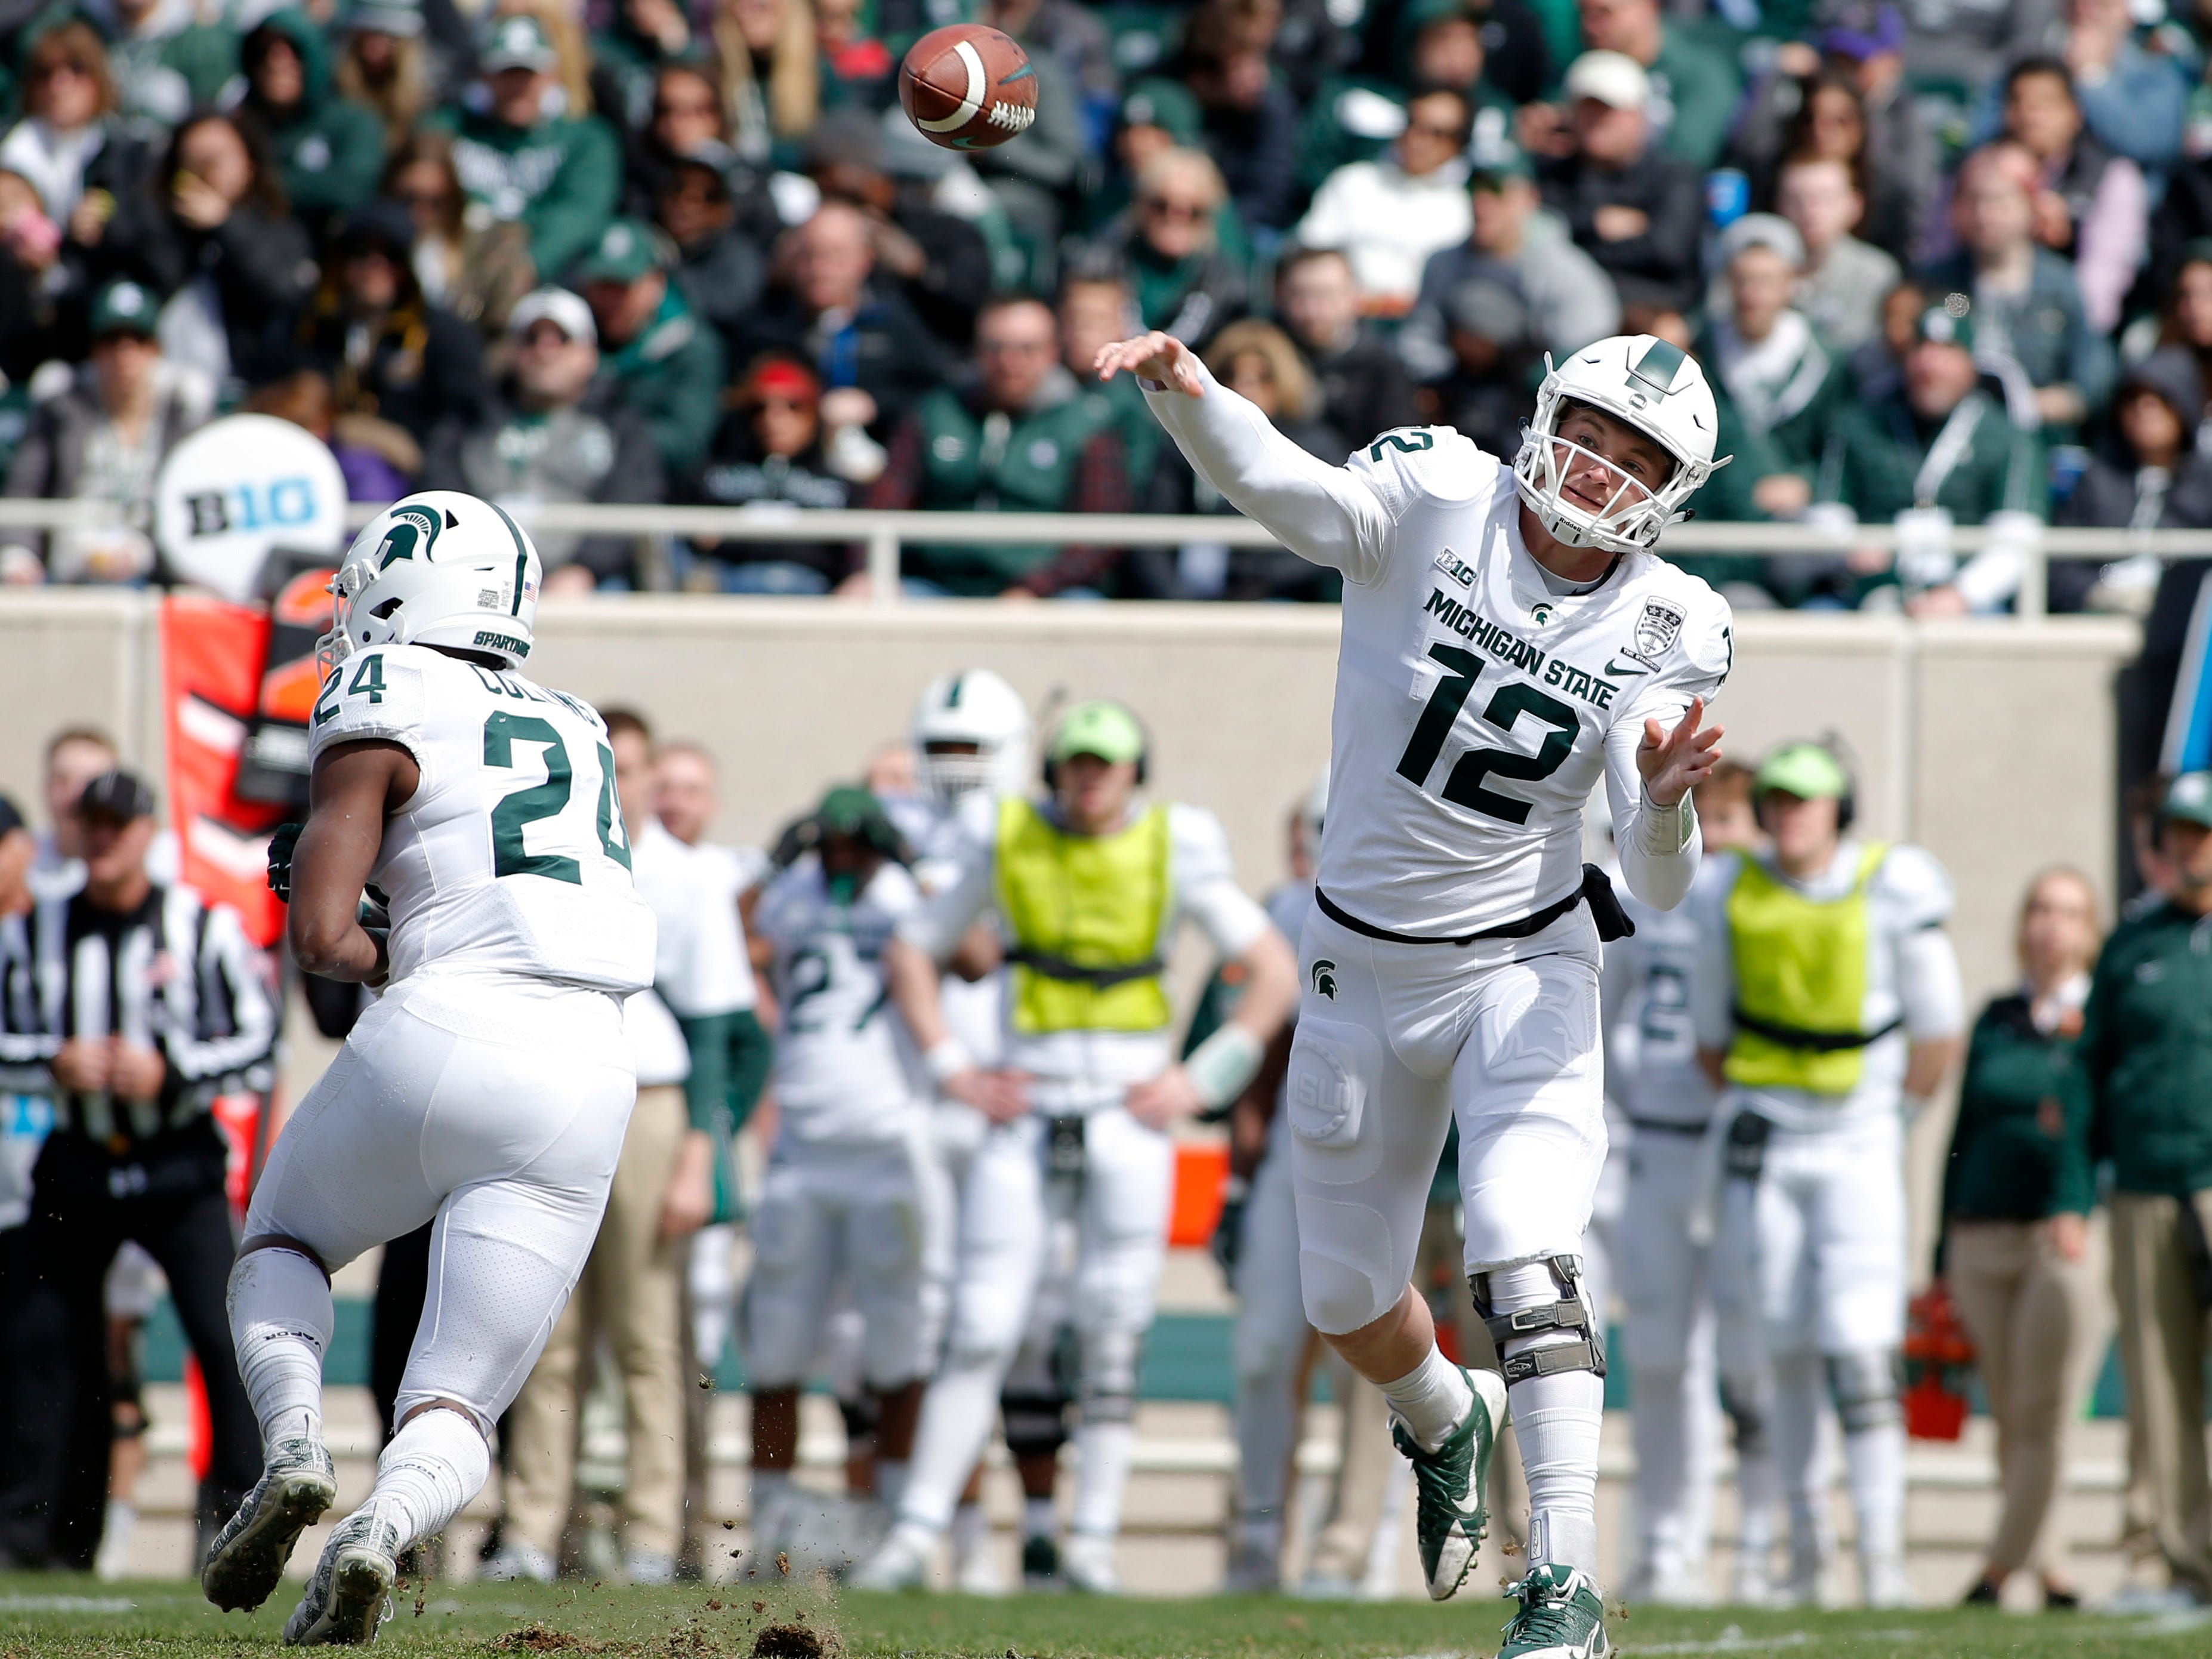 Michigan State quarterback Rocky Lombardi, right, throws a pass as Elijah Collins (24) blocks during an NCAA college football spring scrimmage game, Saturday, April 13, 2019, in East Lansing, Mich. (AP Photo/Al Goldis)